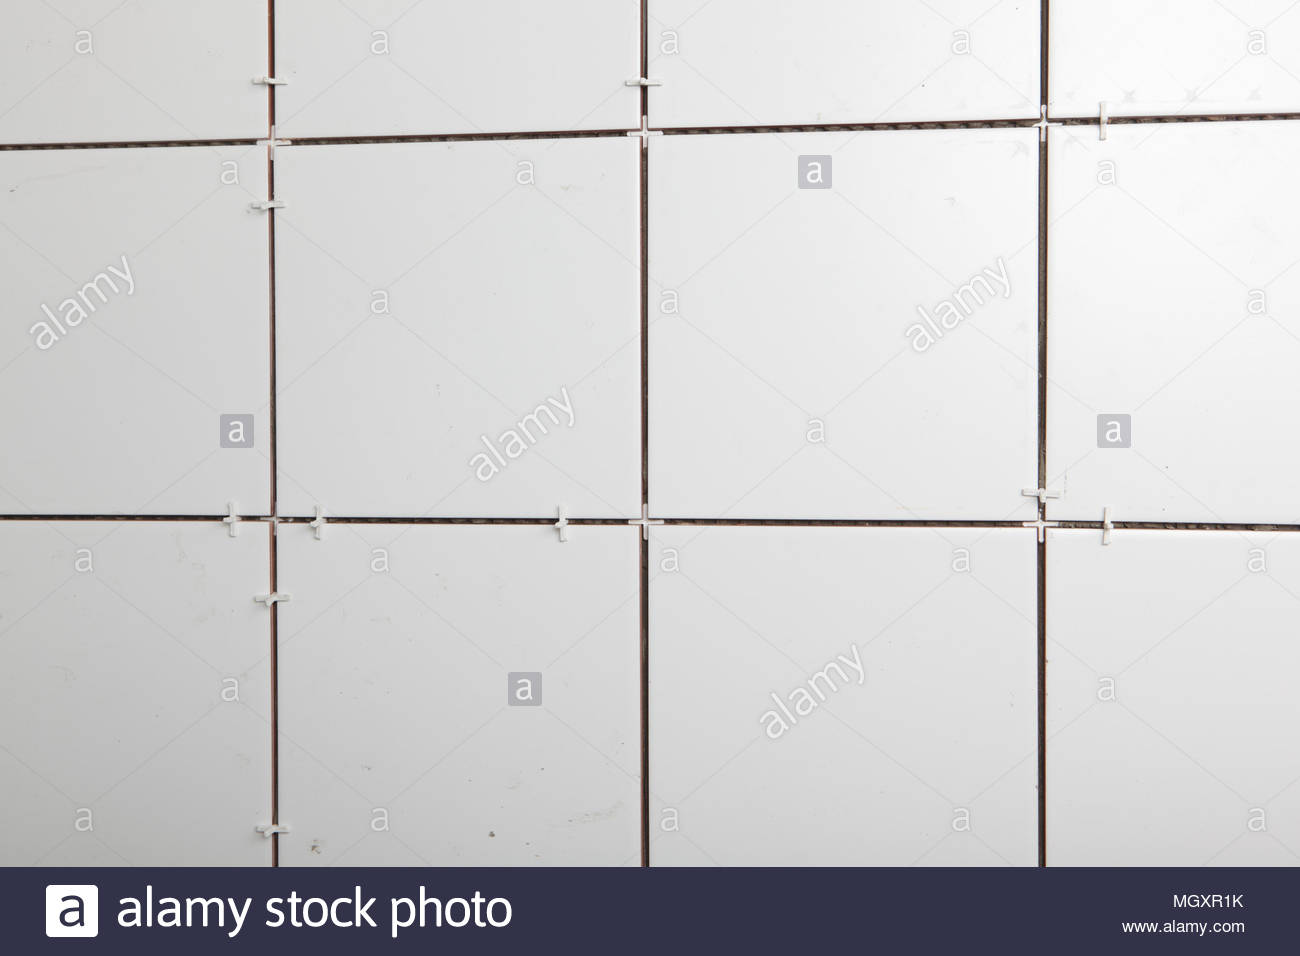 Tiled wall with tile spacers - Stock Image